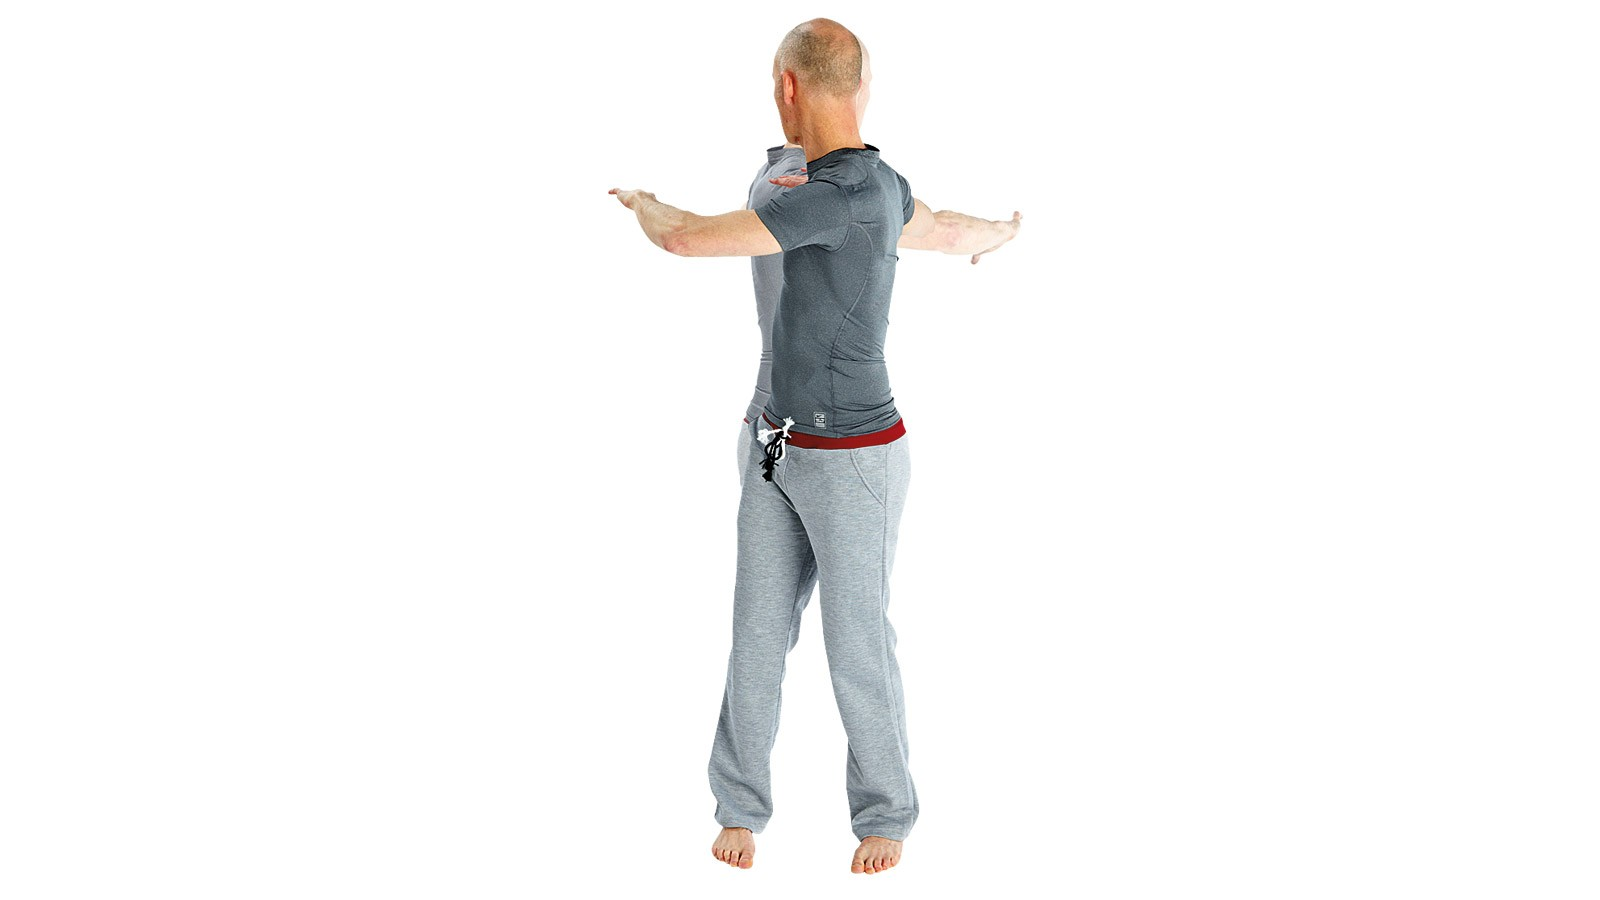 Twisting body from side to side, breathe in when facing forwards and out as the body twists behind